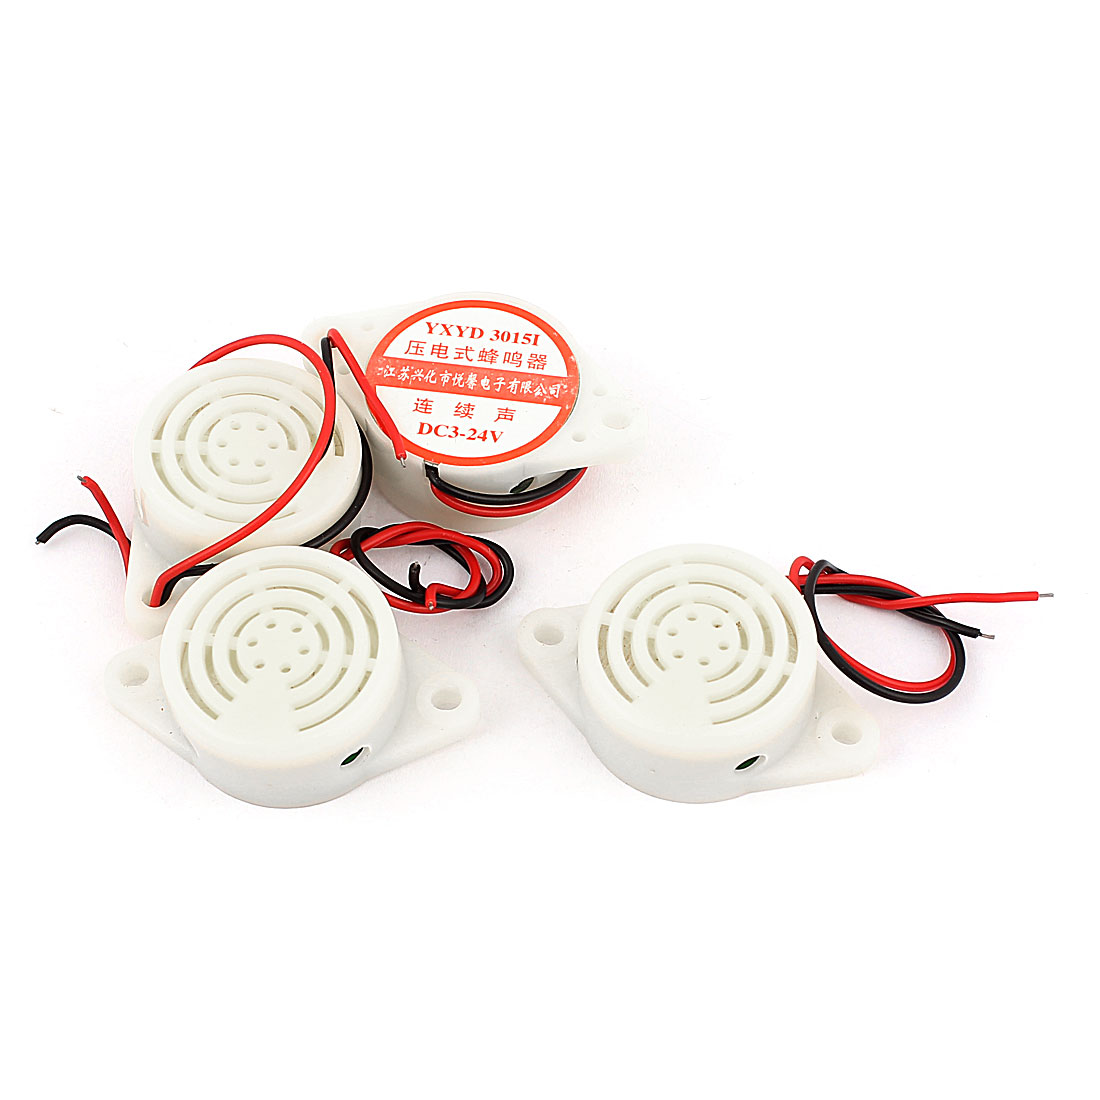 4 Pcs DC 3V-24V 2-Wired Miniature Continuous Sound Electronic Alarm Buzzer Beige